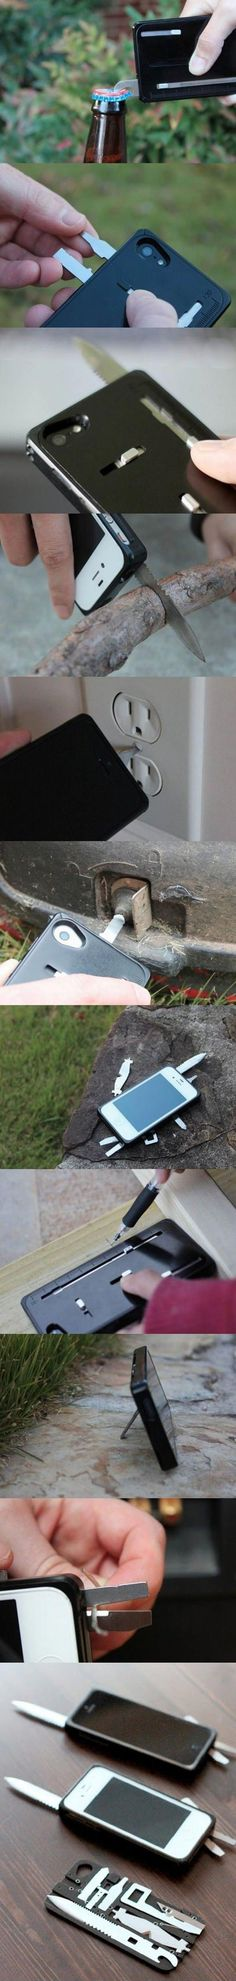 Swiss Army Knife iPhone Case. Crazy.